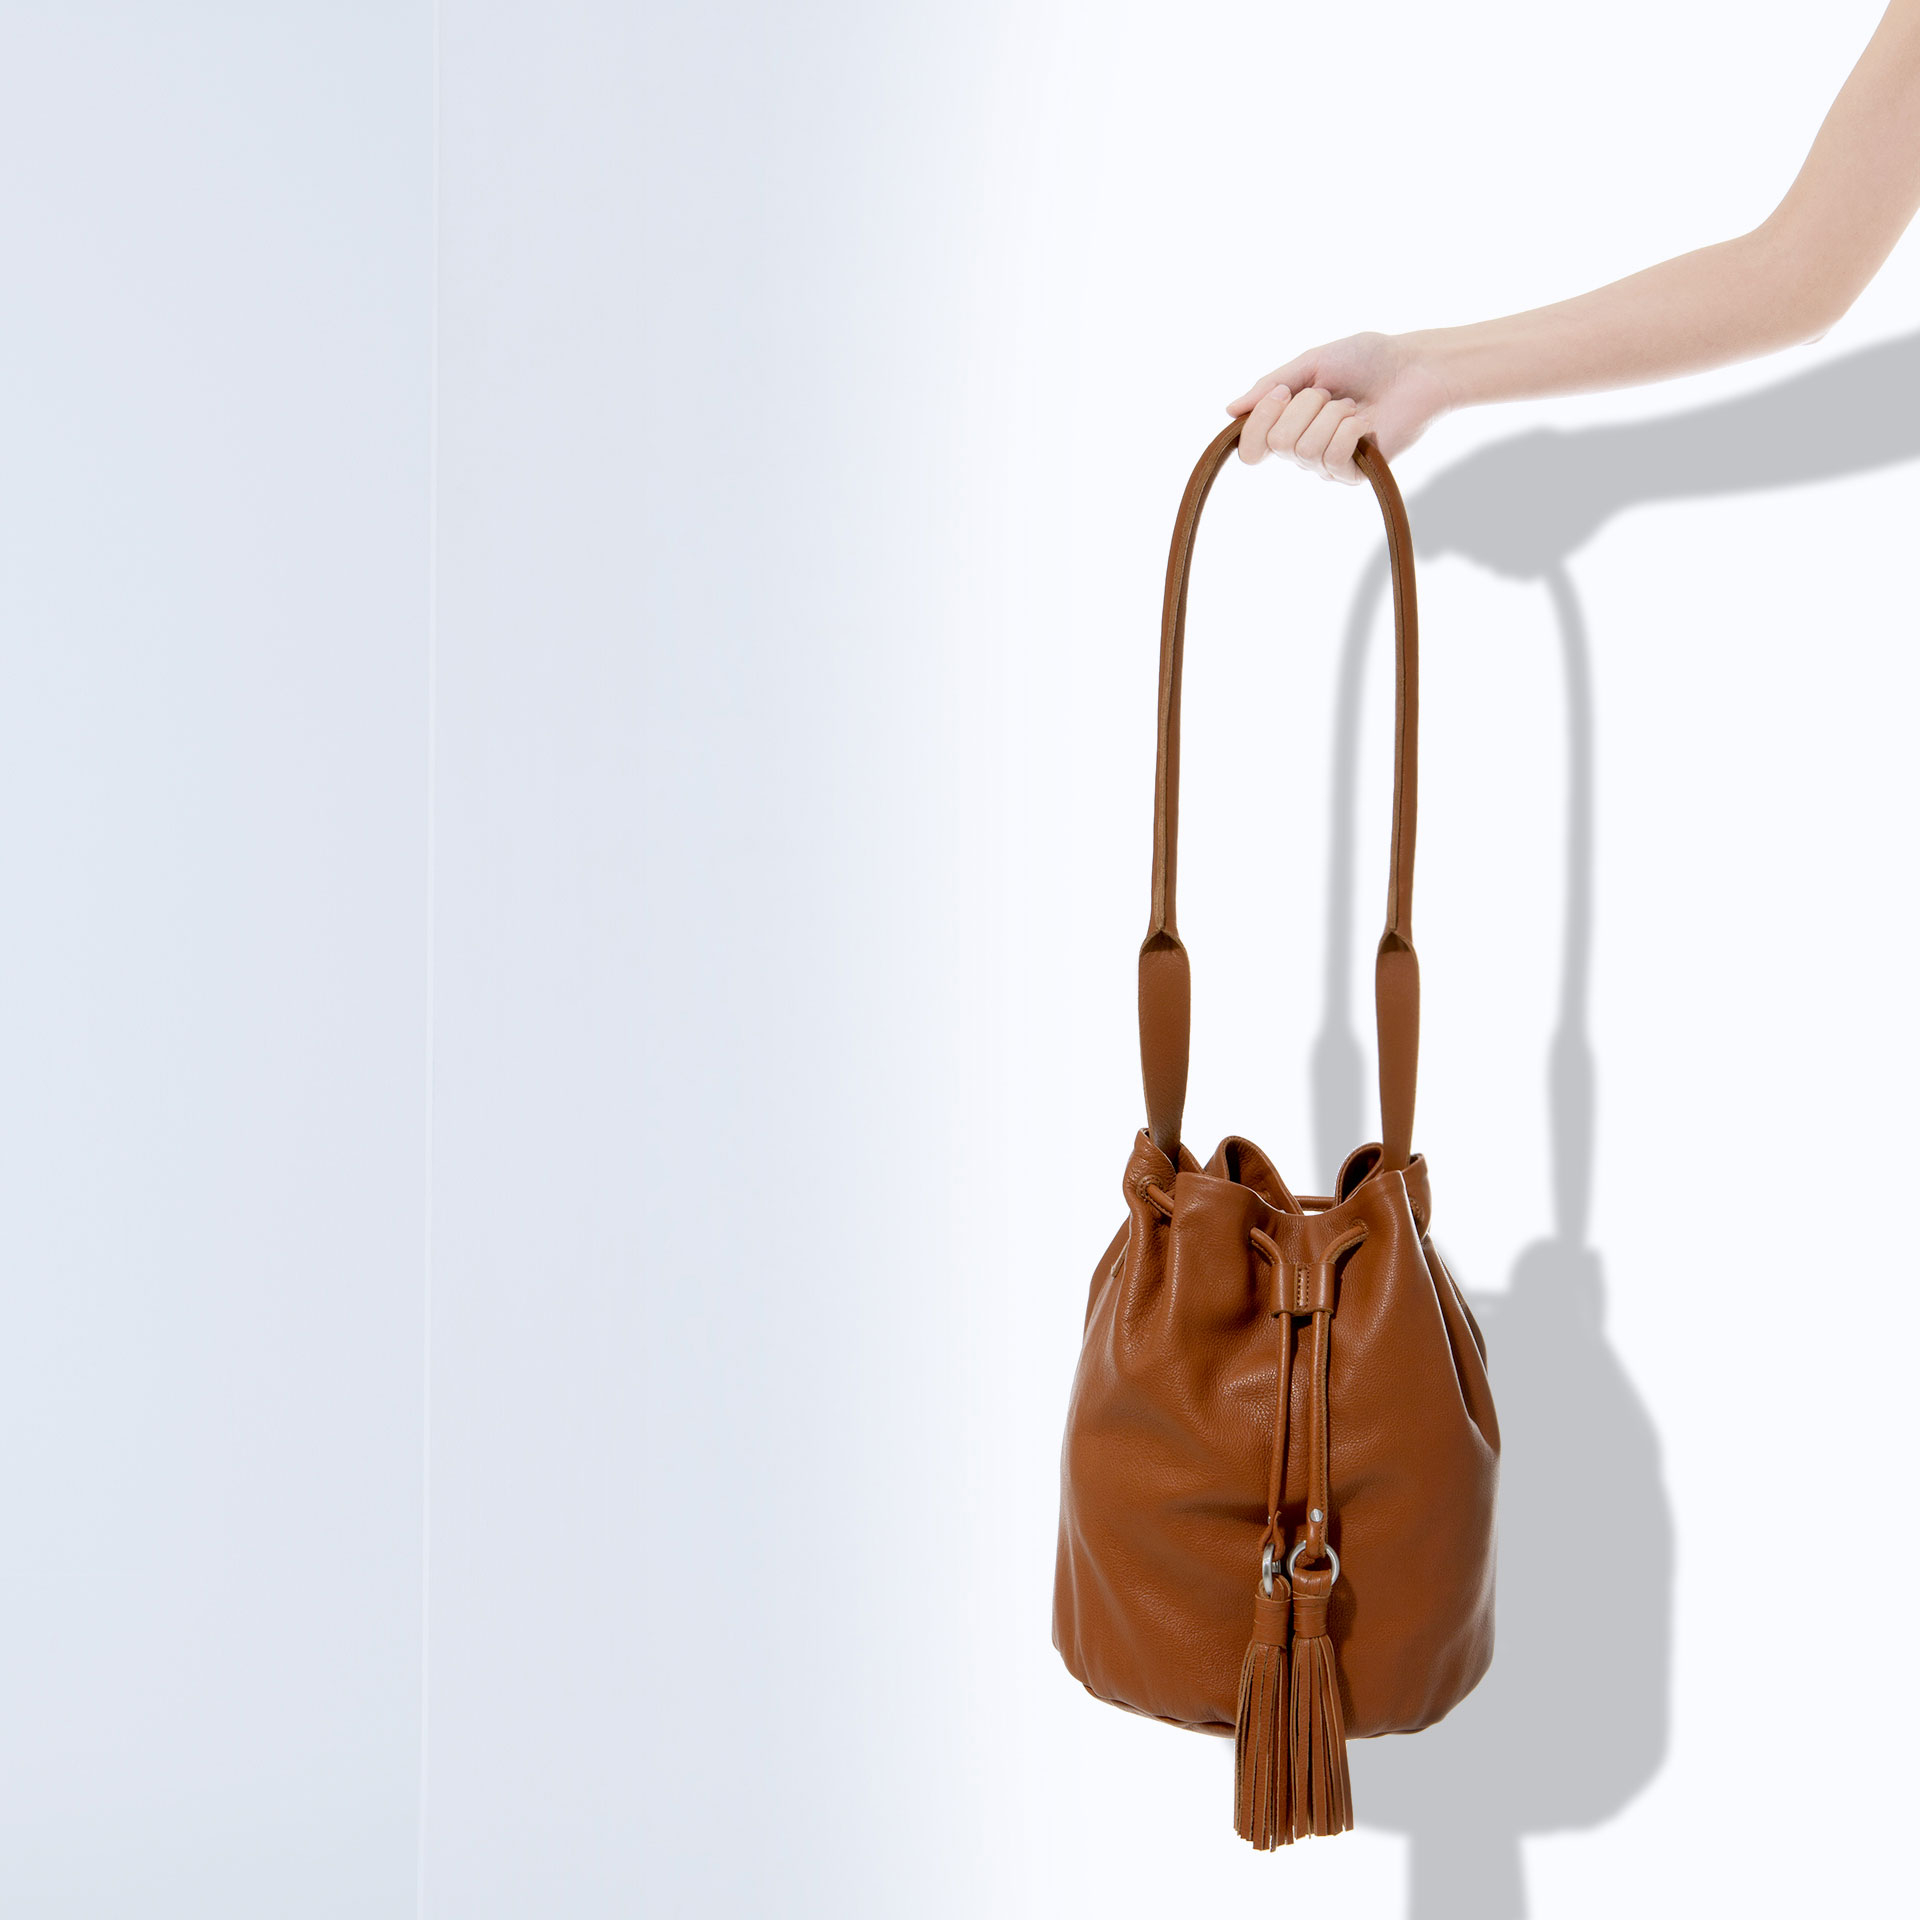 eternal-sv.tk offers Tassel Bags at cheap prices, so you can shop from a huge selection of Tassel Bags, FREE Shipping available worldwide.